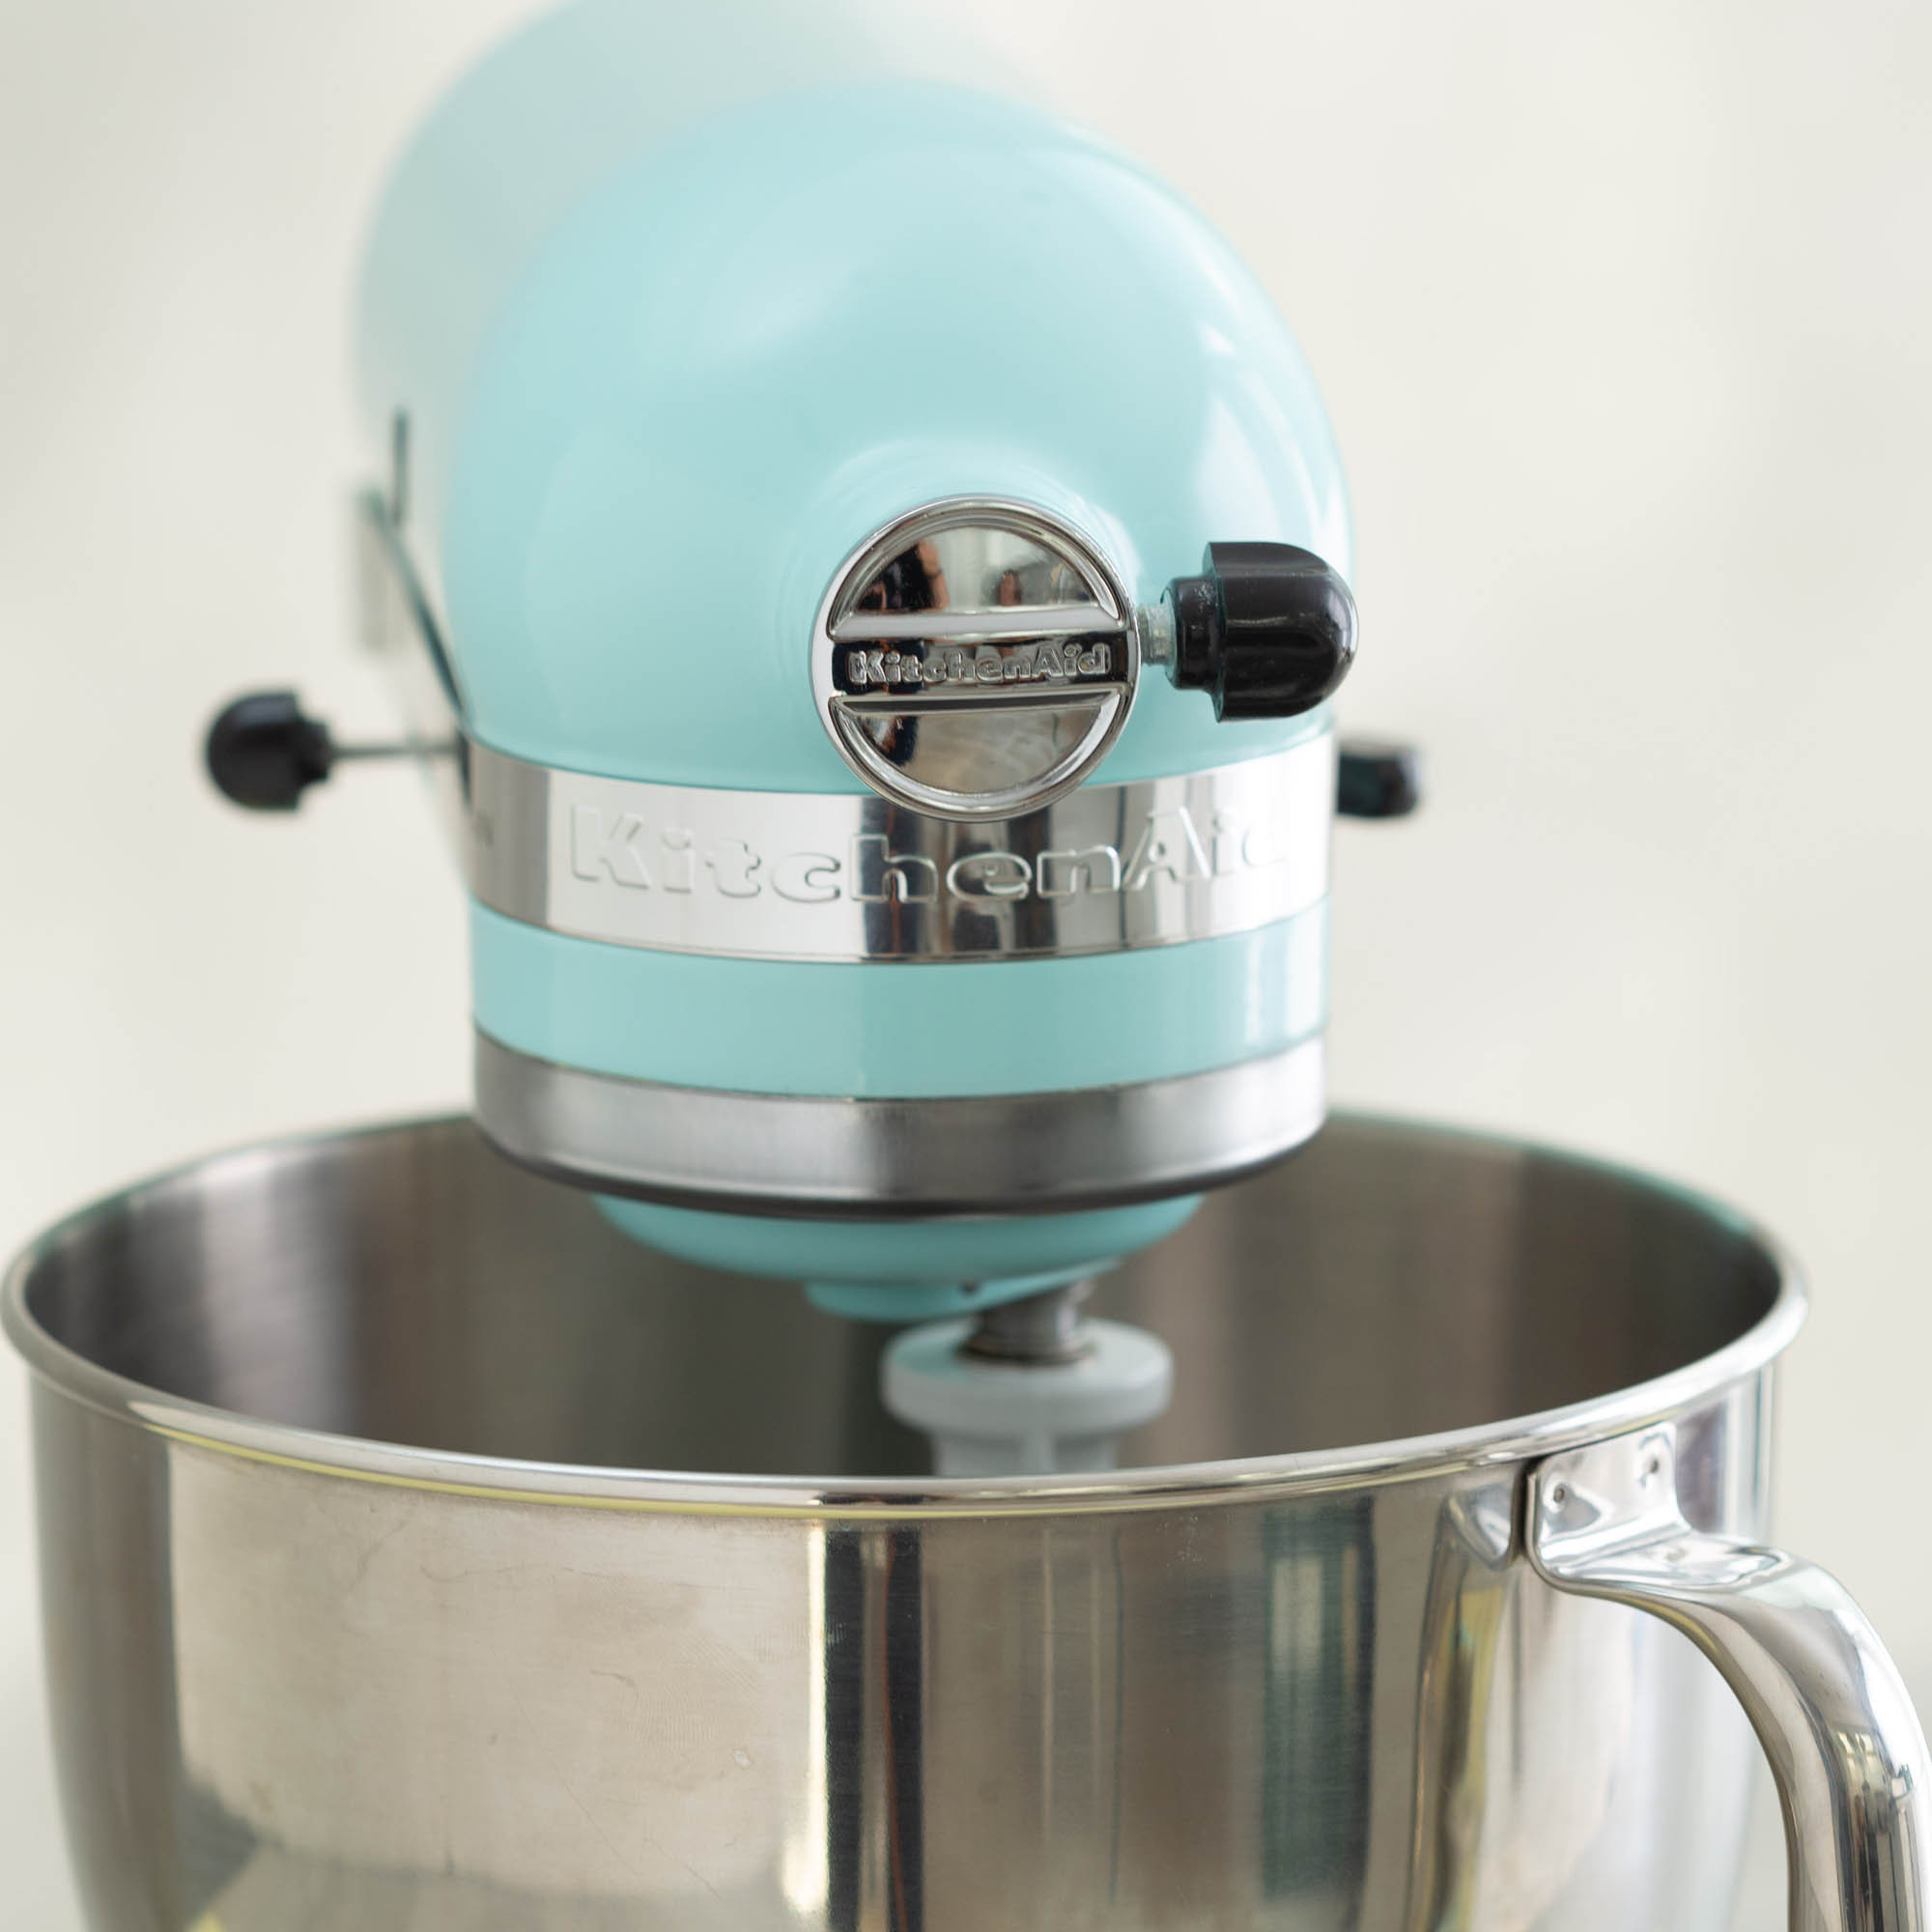 Baking gifts for mum - KitchenAid tilt head mixer